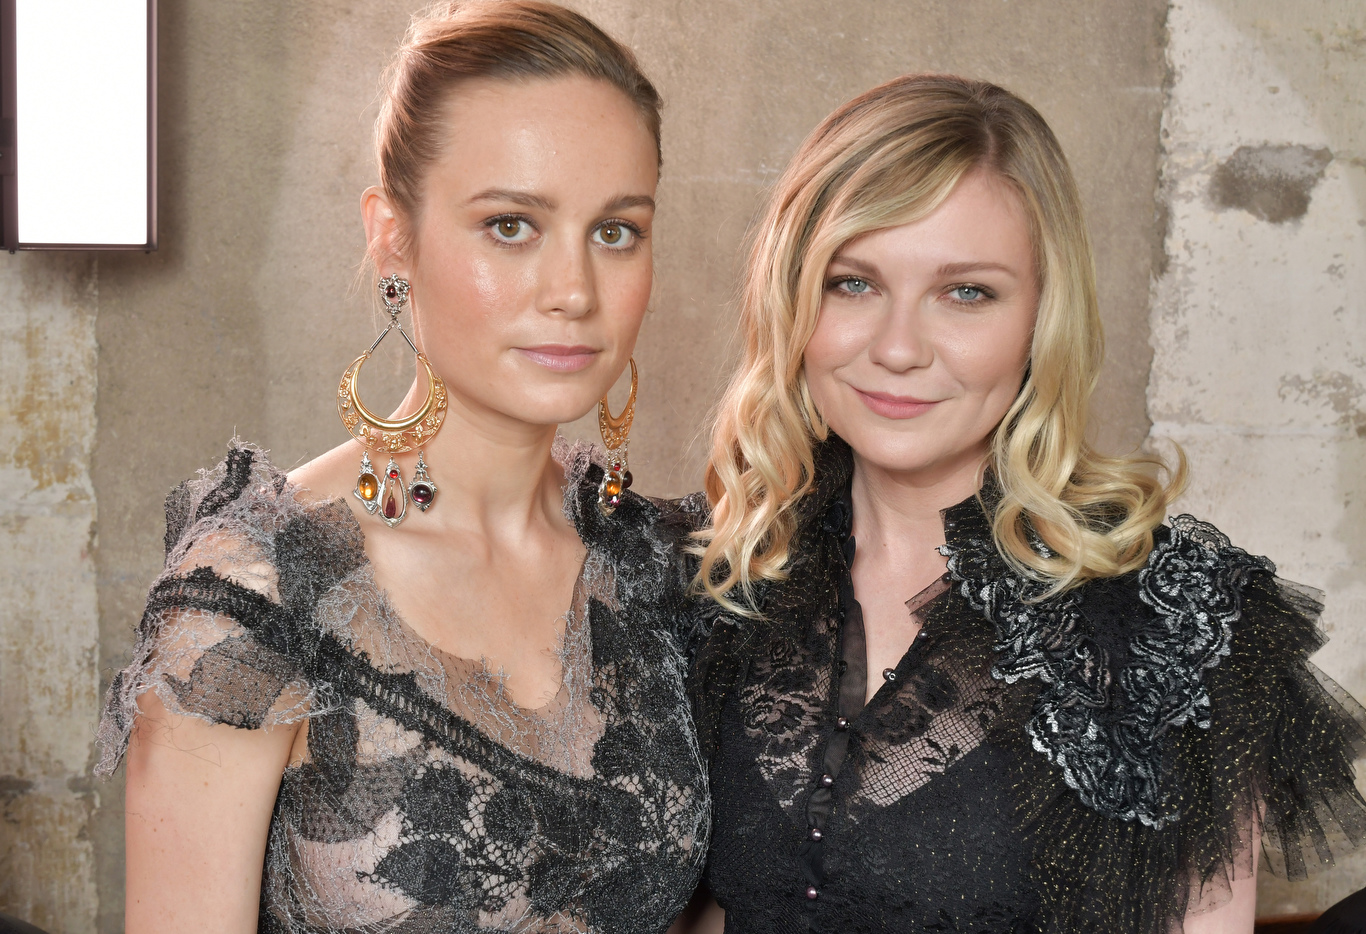 Brie Larson and Kirsten Dunst in the front row